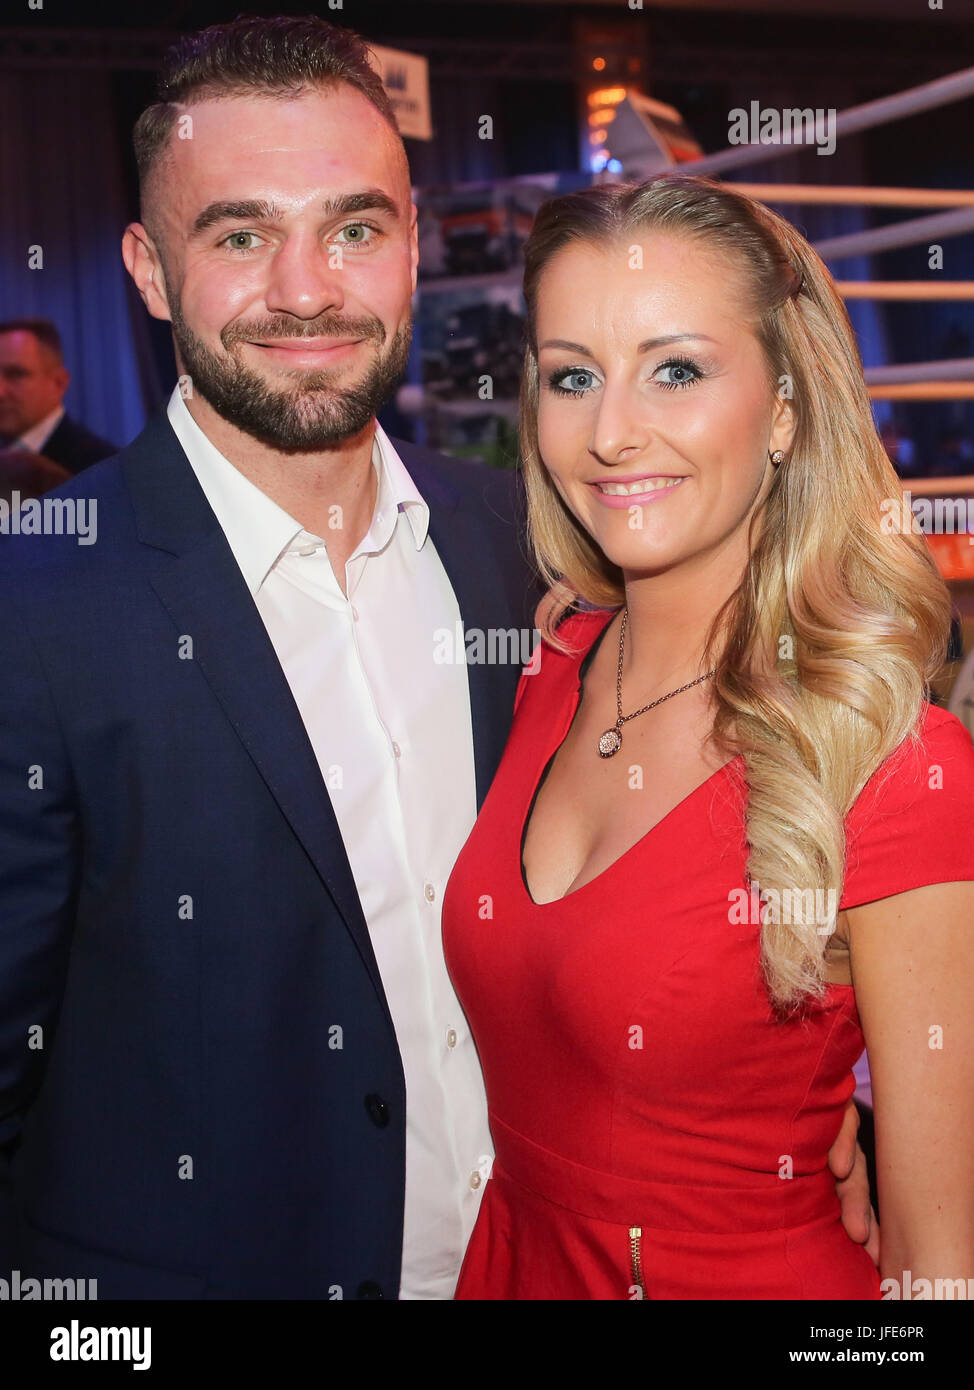 Boxer Dominic Bosel With Girlfriend Stock Photo Alamy